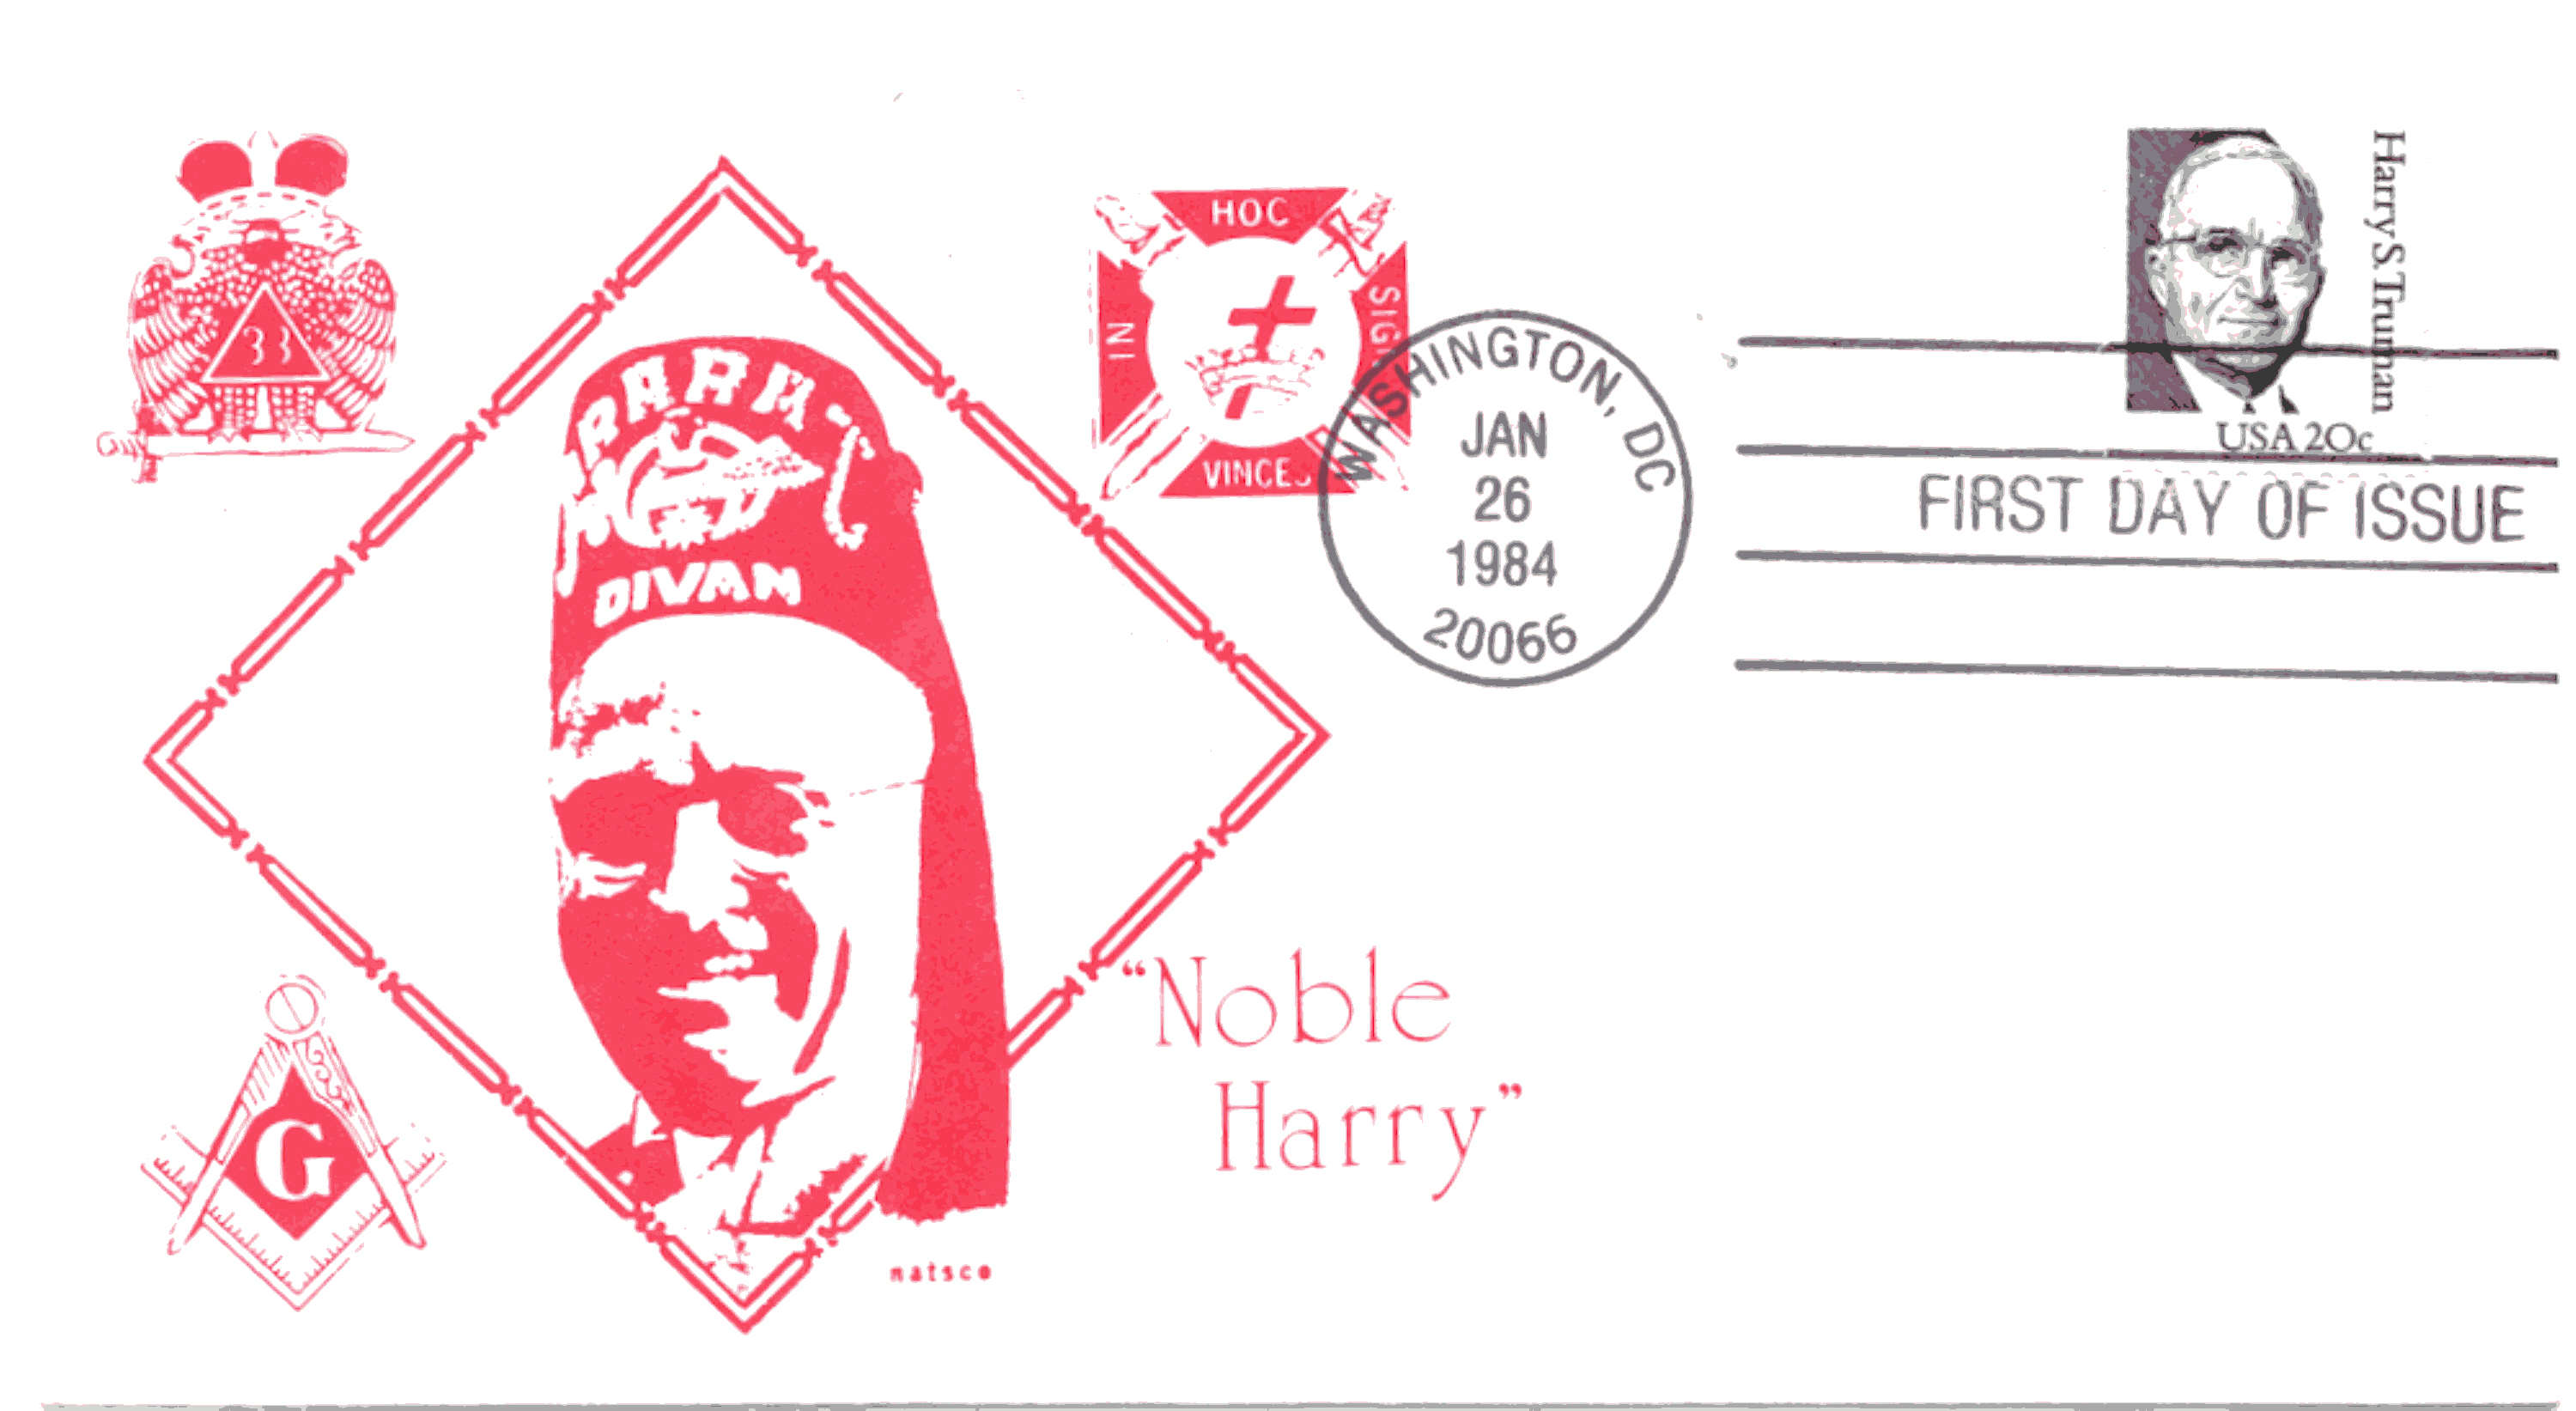 HST Definitive FDC #20